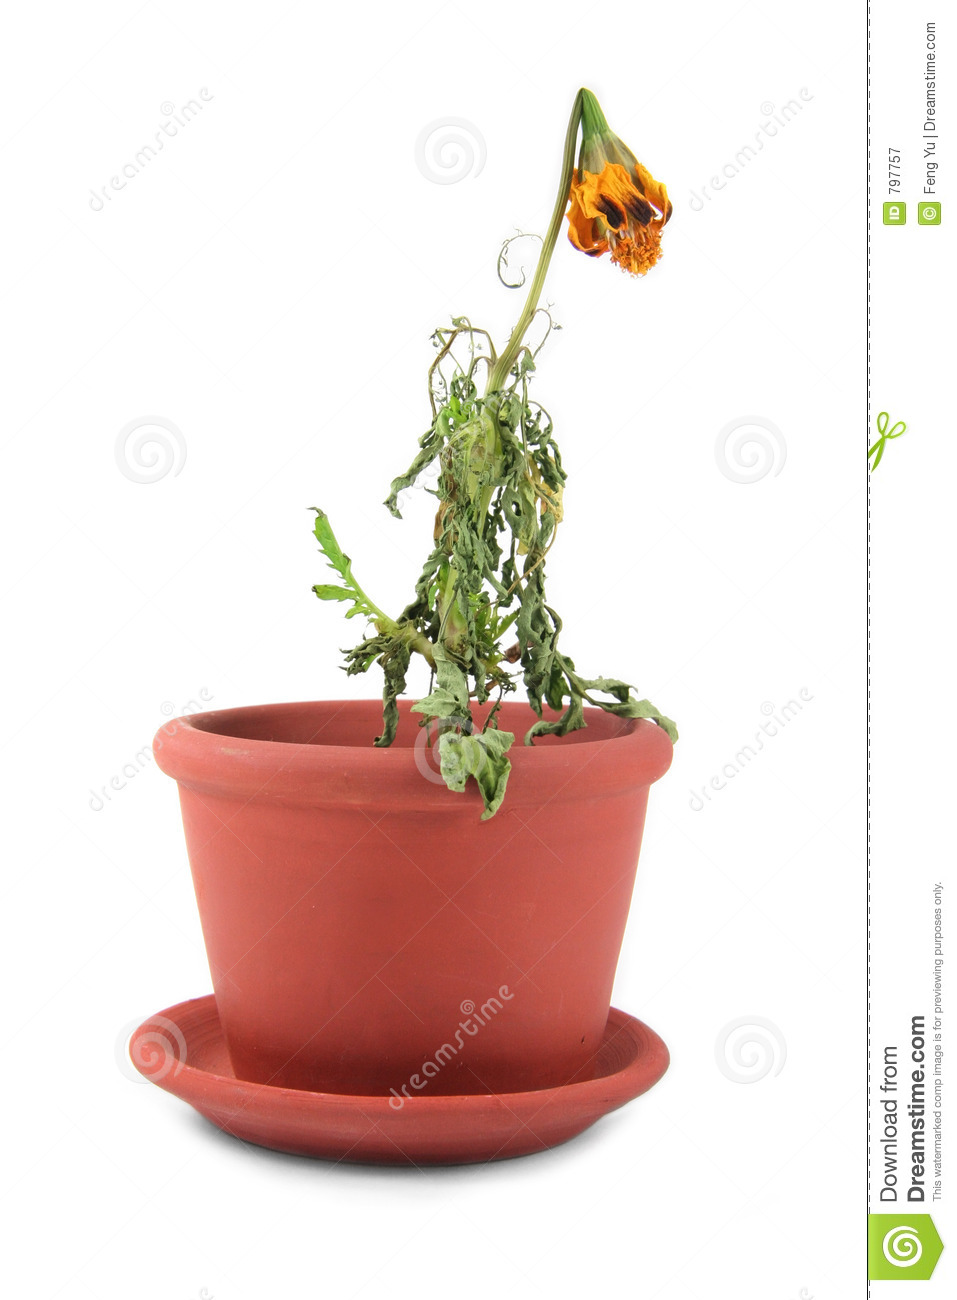 clipart dead flowers - photo #14